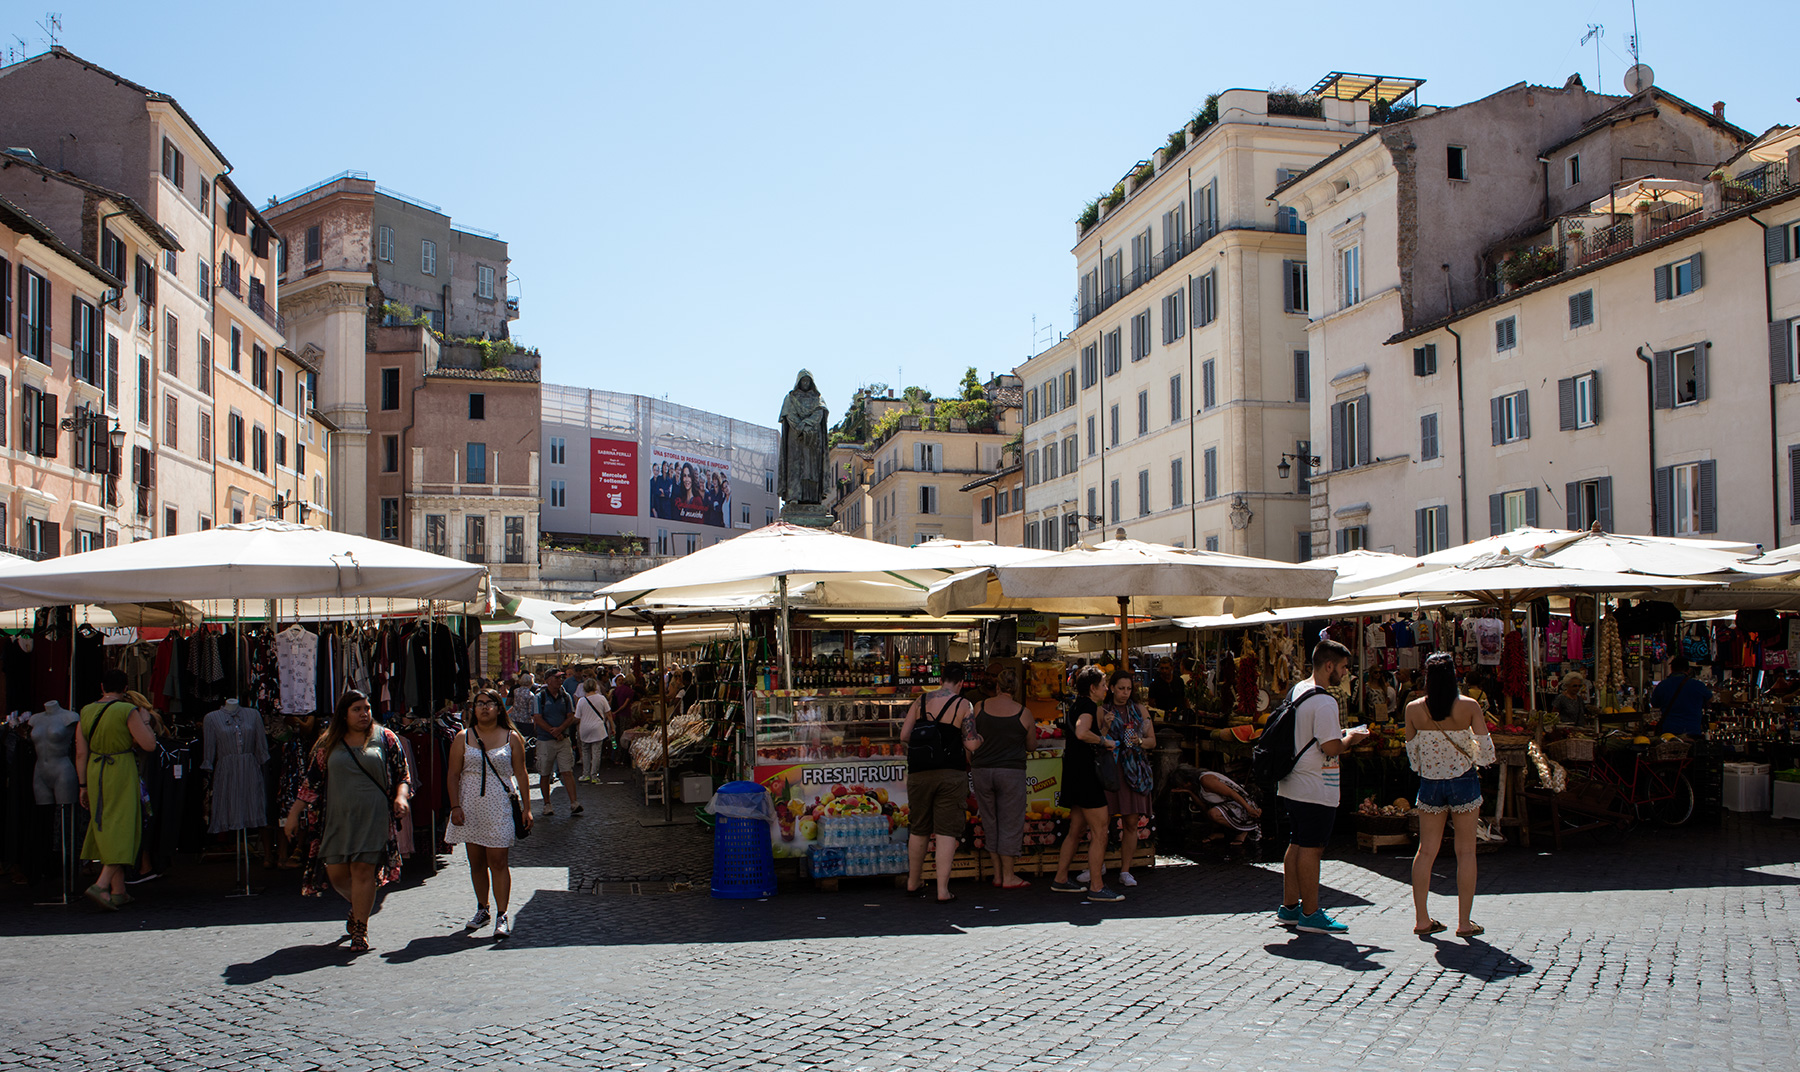 campo de fiori rome nightlife guide - photo#29